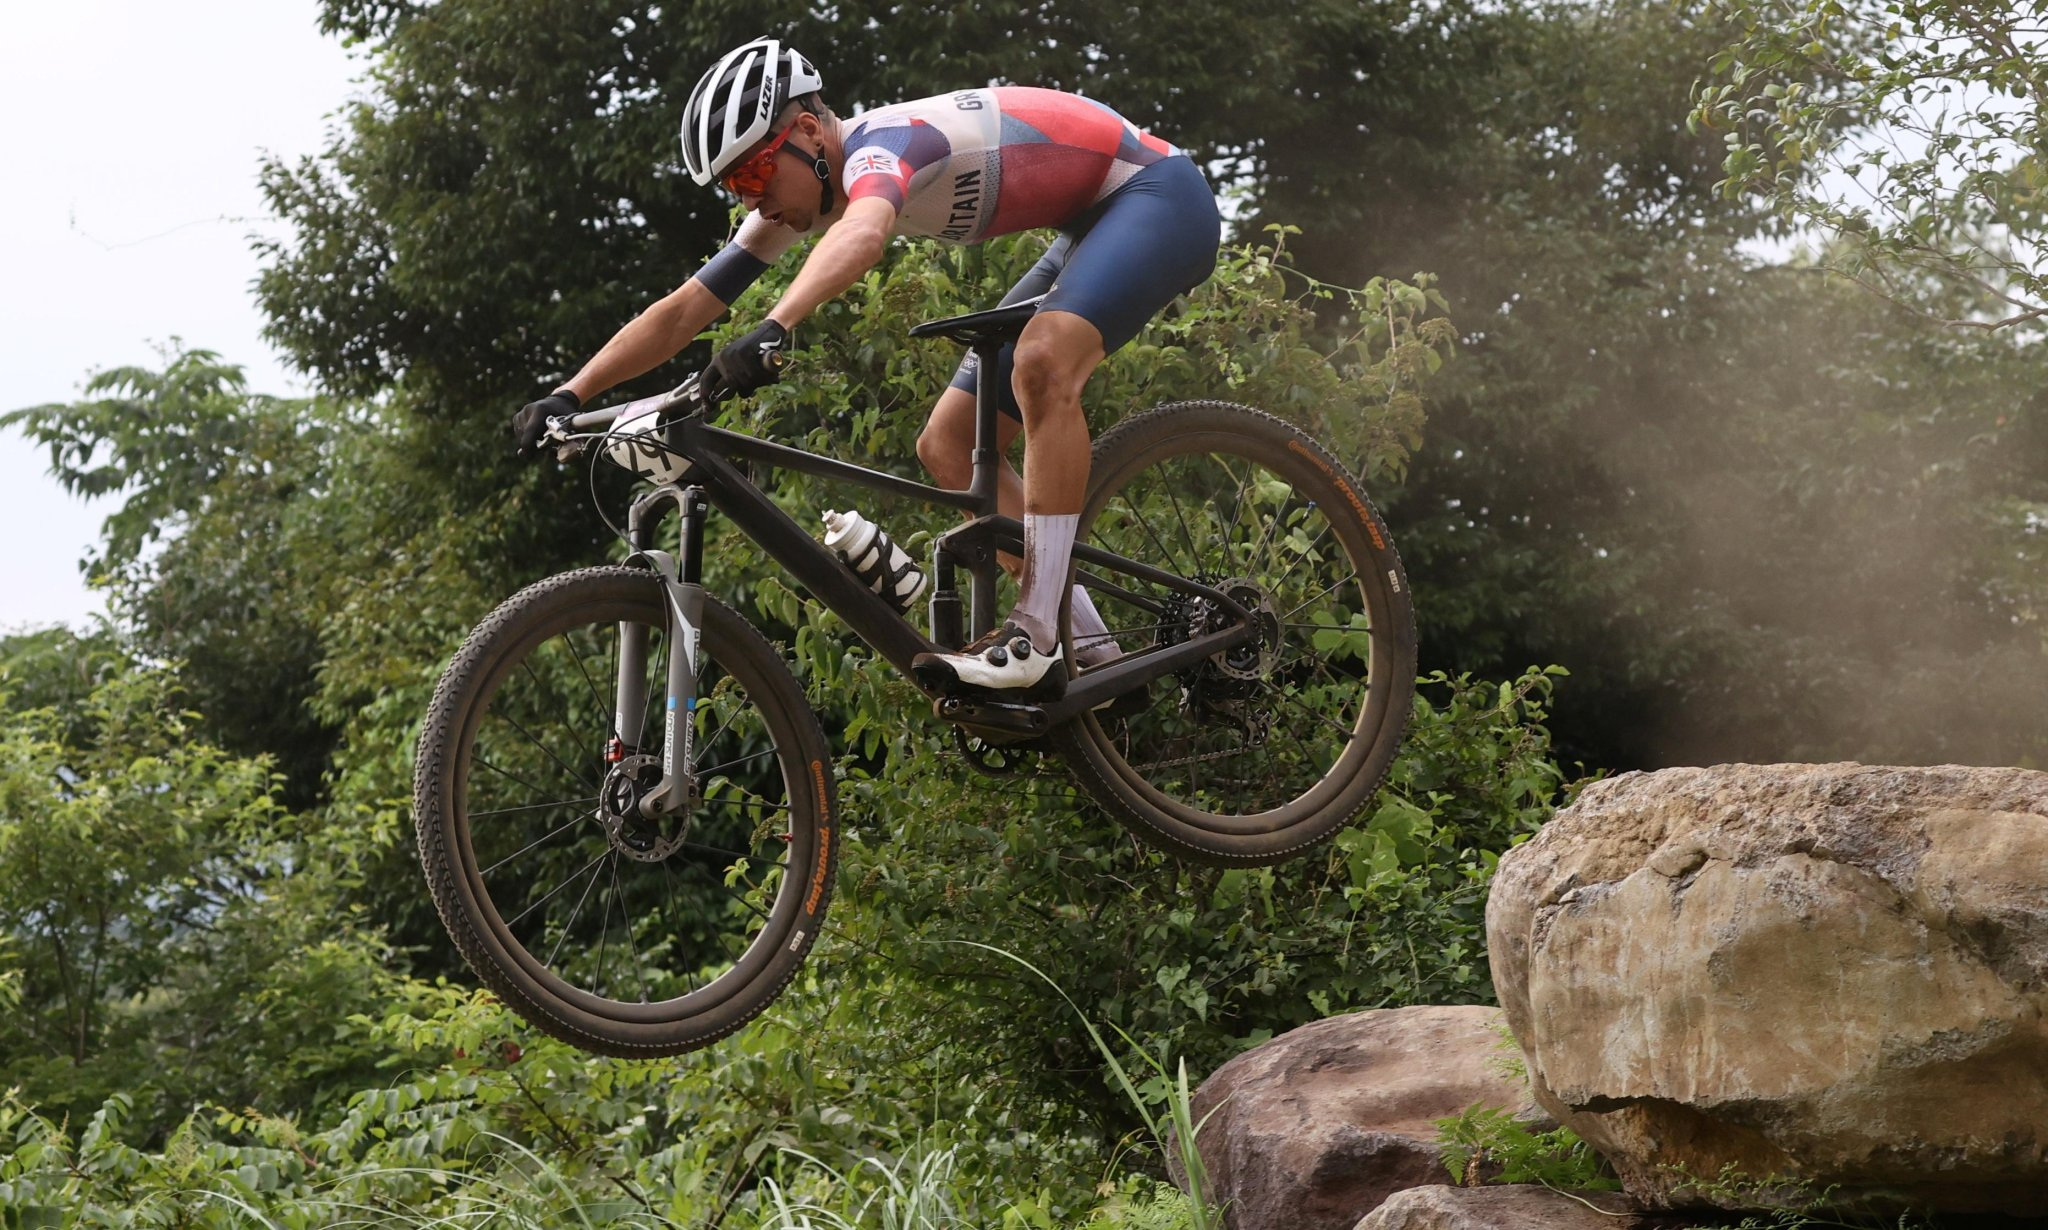 Pidcock wins cross-country bike gold despite recovering from collarbone break